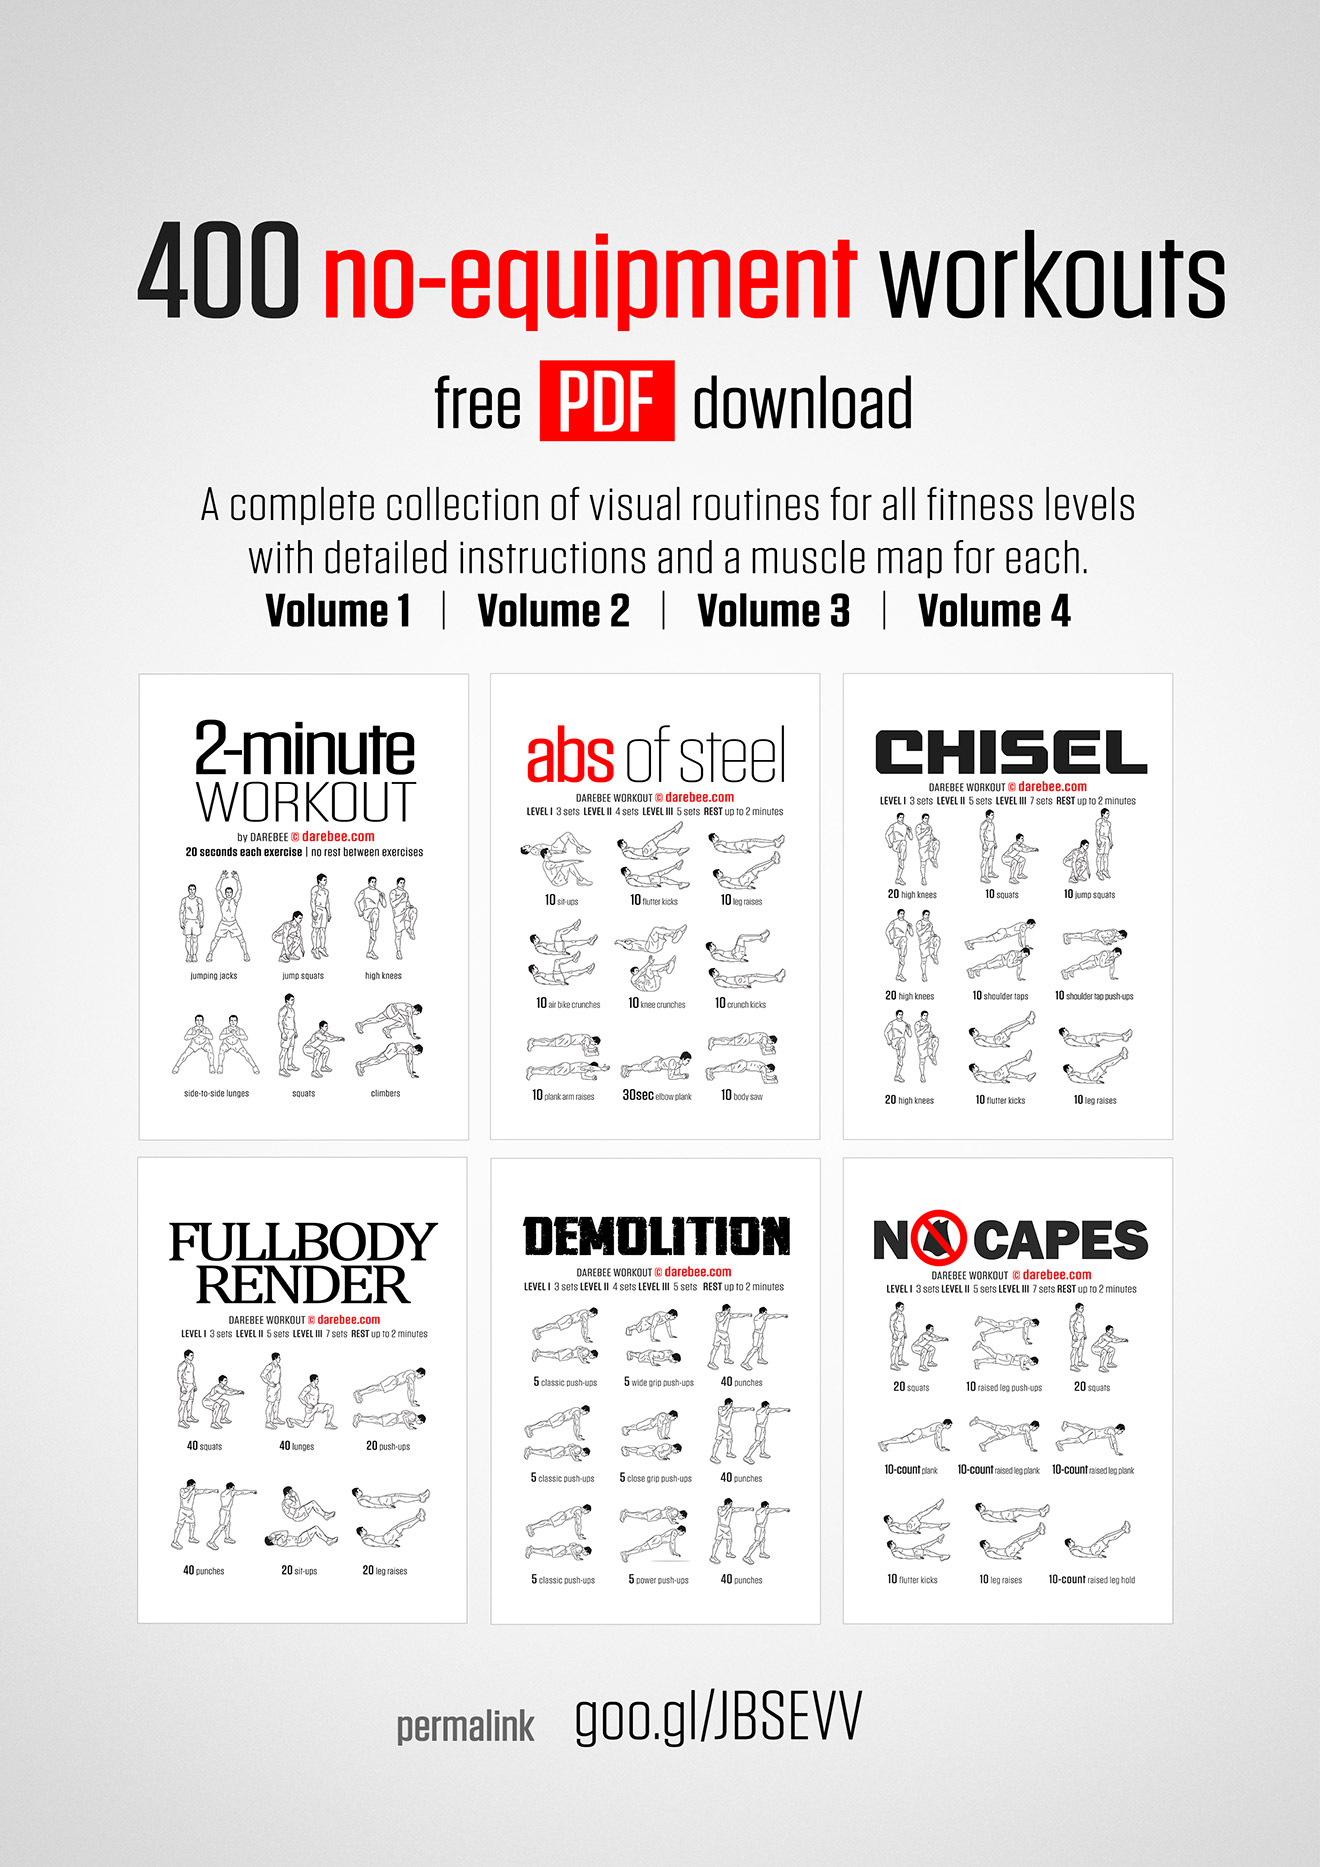 Dumbbell Workout Plan Pdf : dumbbell, workout, No-Equipment, Workout, Collections